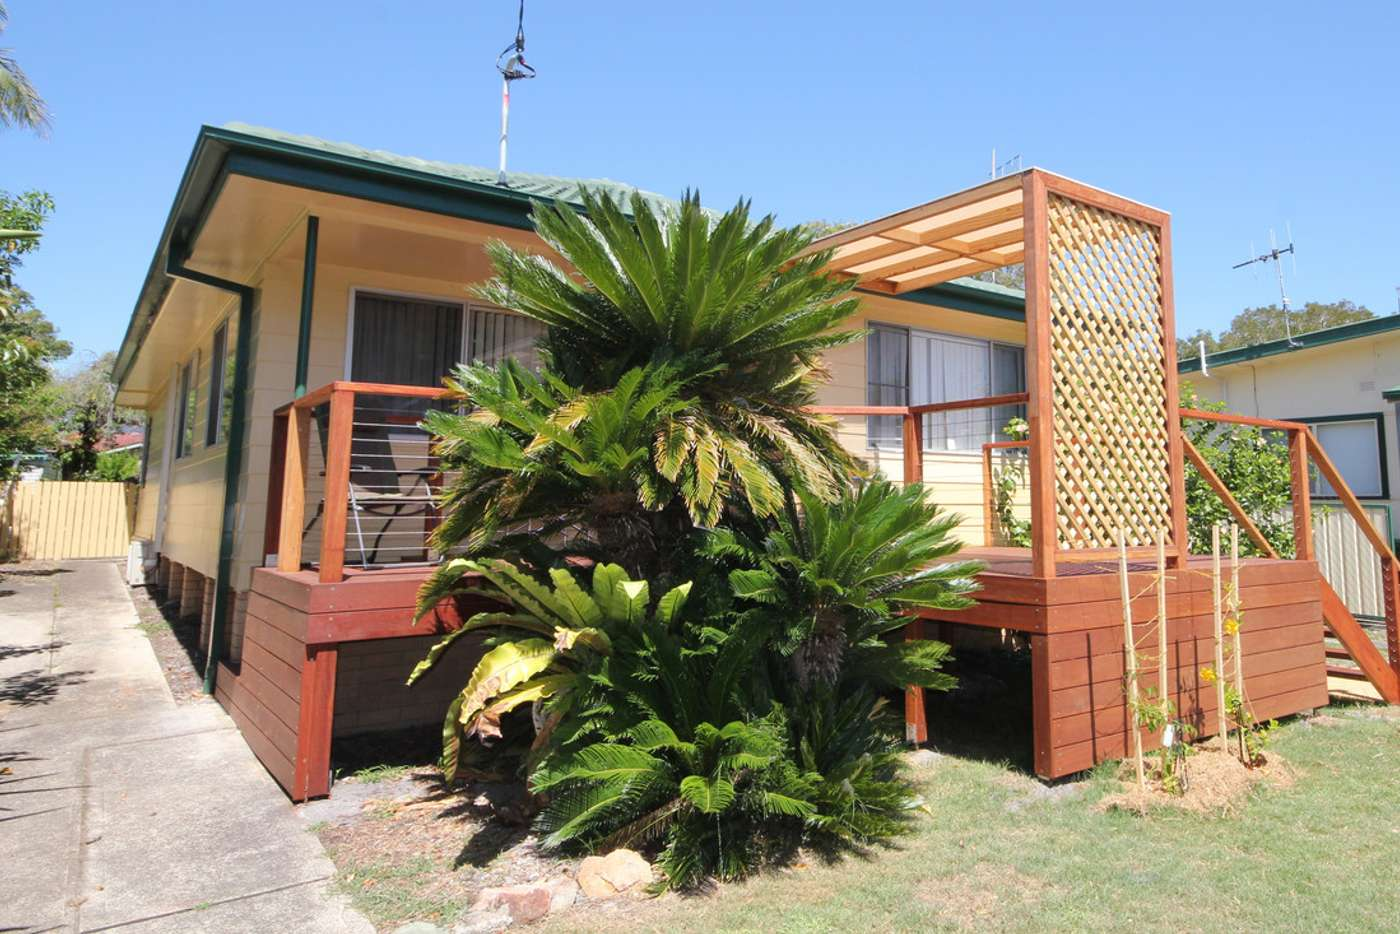 Main view of Homely house listing, 9 David Campbell Street, North Haven NSW 2443